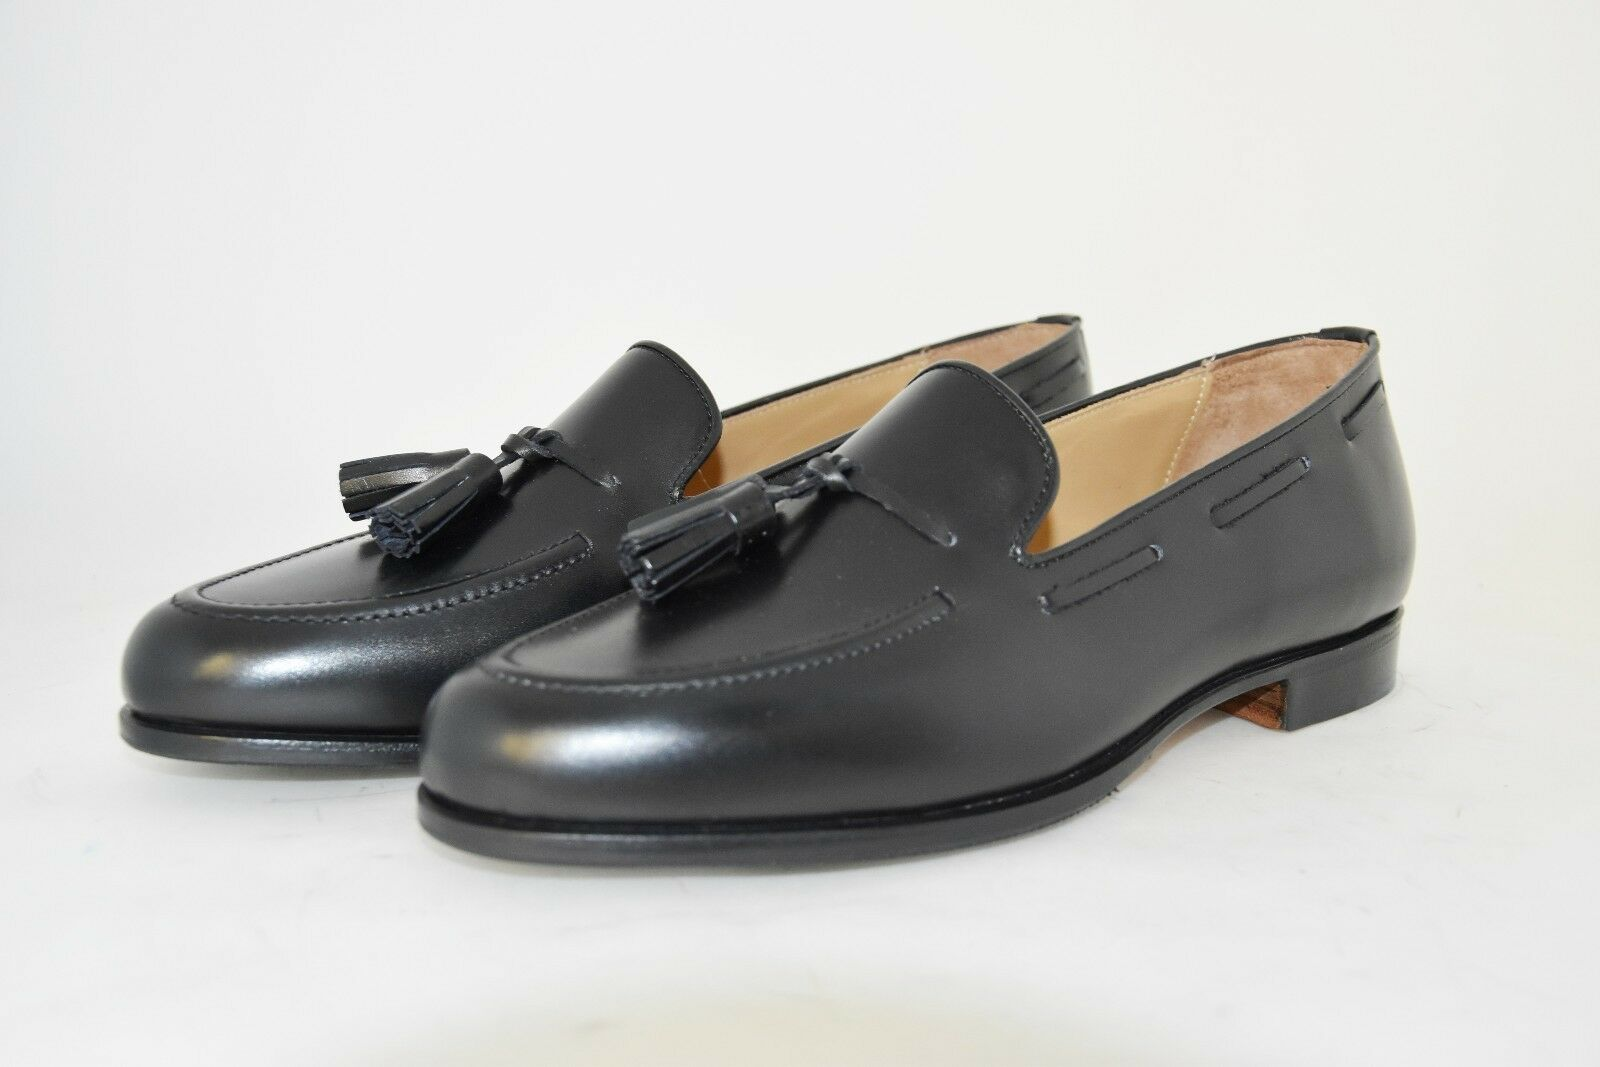 conveniente MAN-7½eu-8½usa-LOW VAMP TASSEL LOAFER-MOCASSINO-nero CALF-VITELLO-LEATHER SOLE SOLE SOLE  più sconto